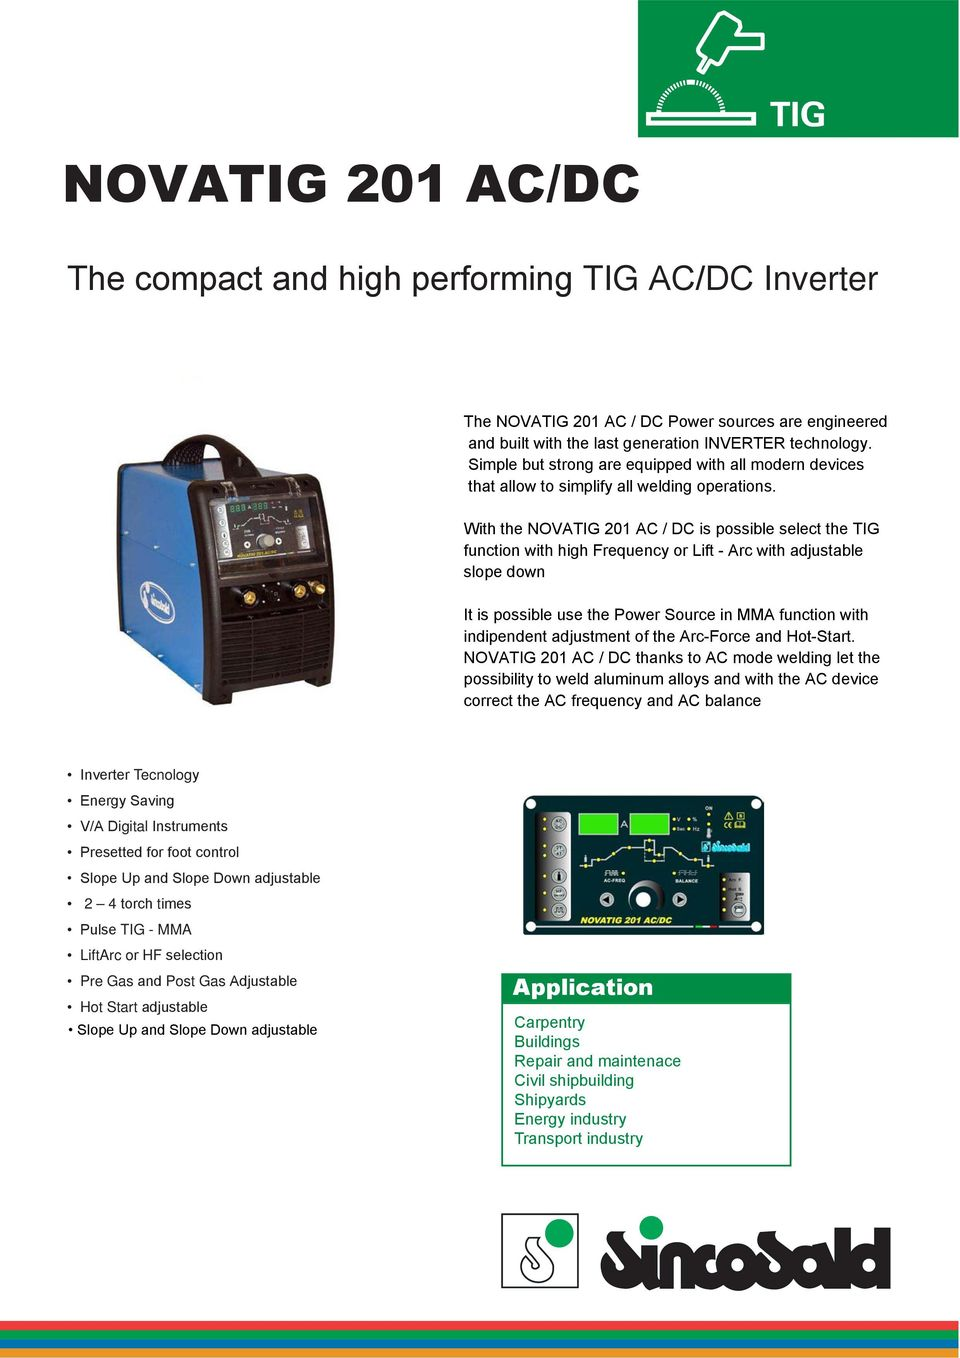 With the NOVATIG 201 AC / DC is possible select the TIG function with high Frequency or Lift - Arc with adjustable slope down It is possible use the Power Source in MMA function with indipendent